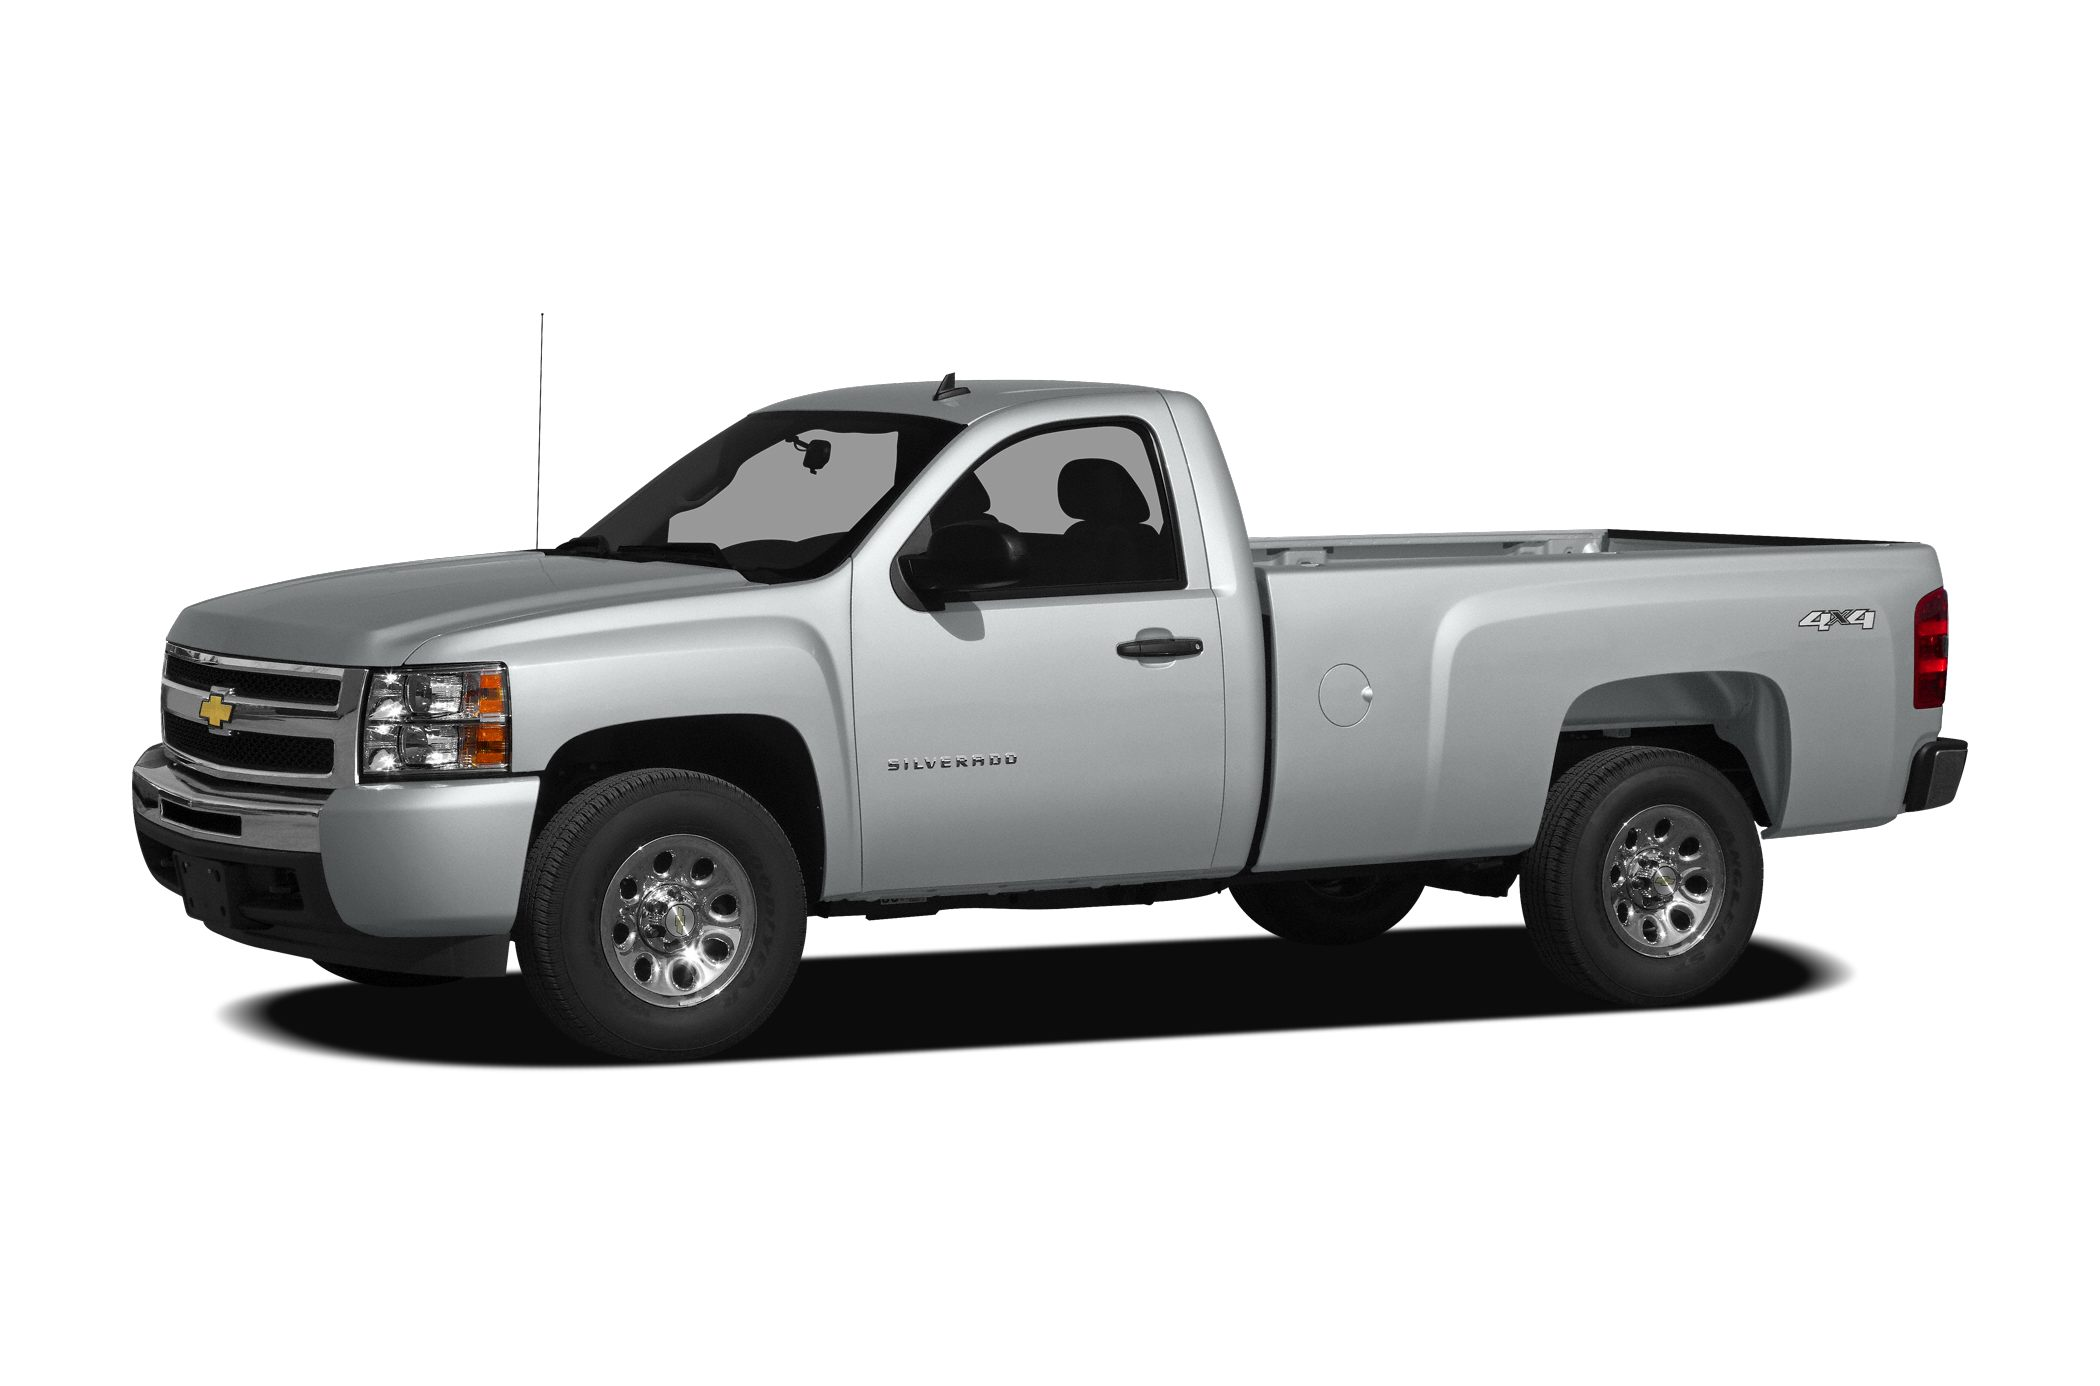 2010 Chevrolet Silverado 1500 LT Extended Cab Pickup for sale in New Braunfels for $16,995 with 116,725 miles